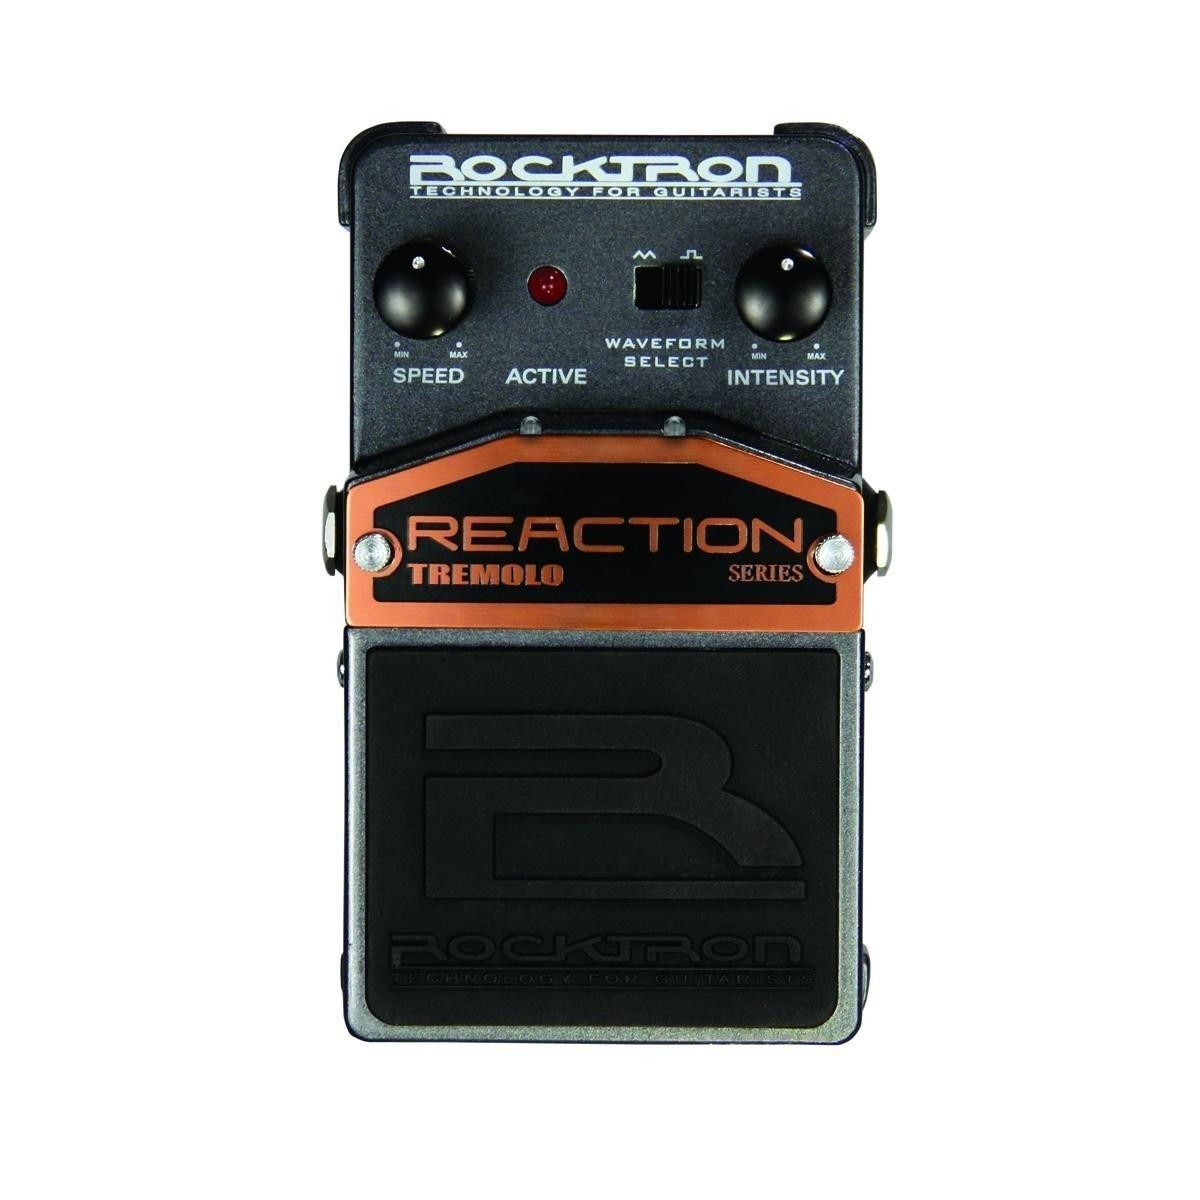 Pedal de Efeitos Rocktron Reaction Tremolo